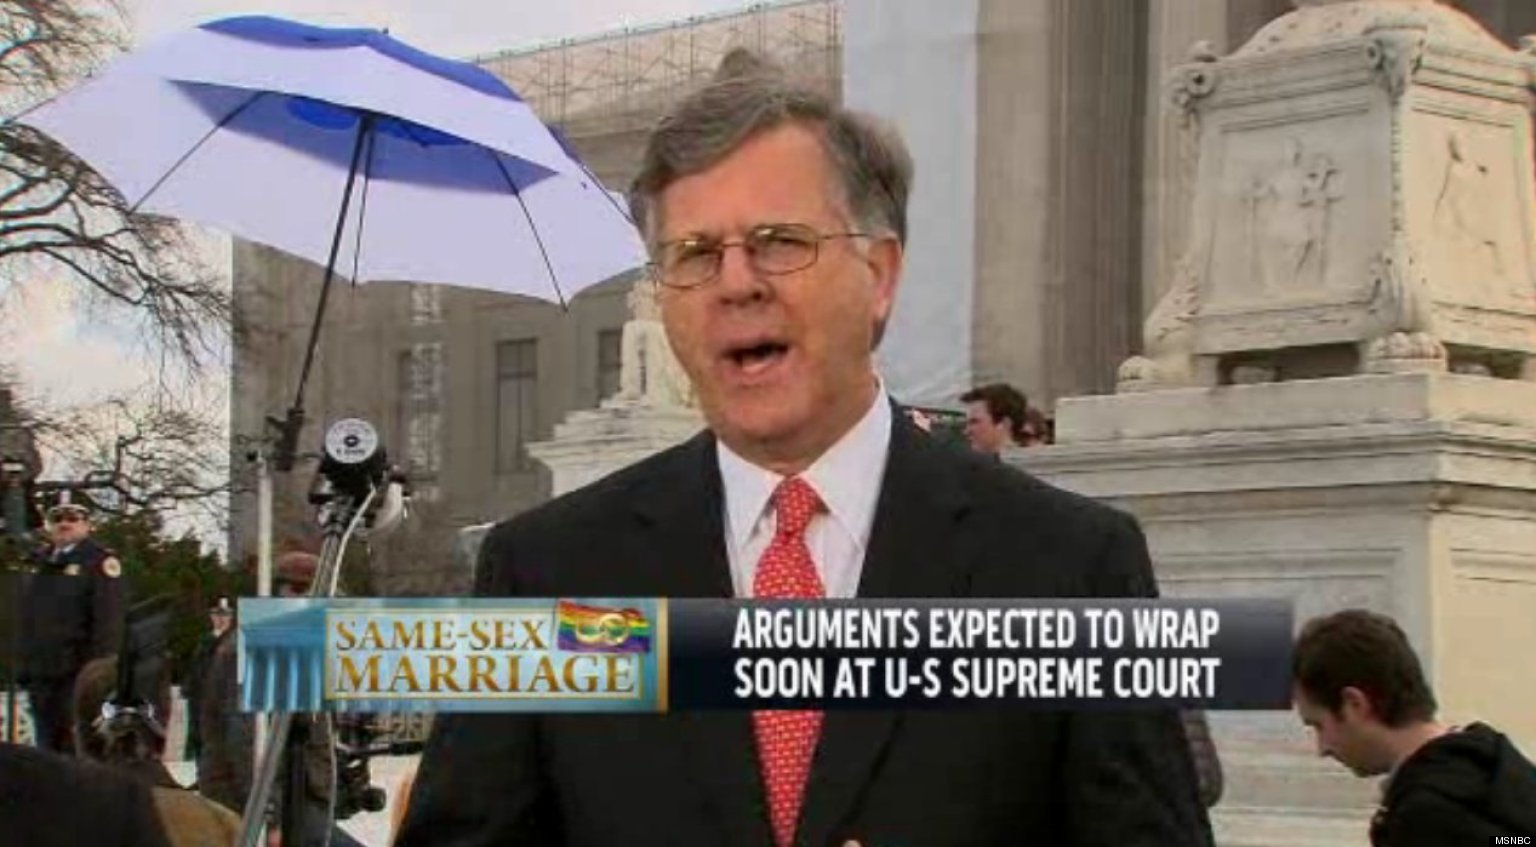 NBC Reporter: SCOTUS 'Not Prepared To Issue Broad Ruling' On Marriage